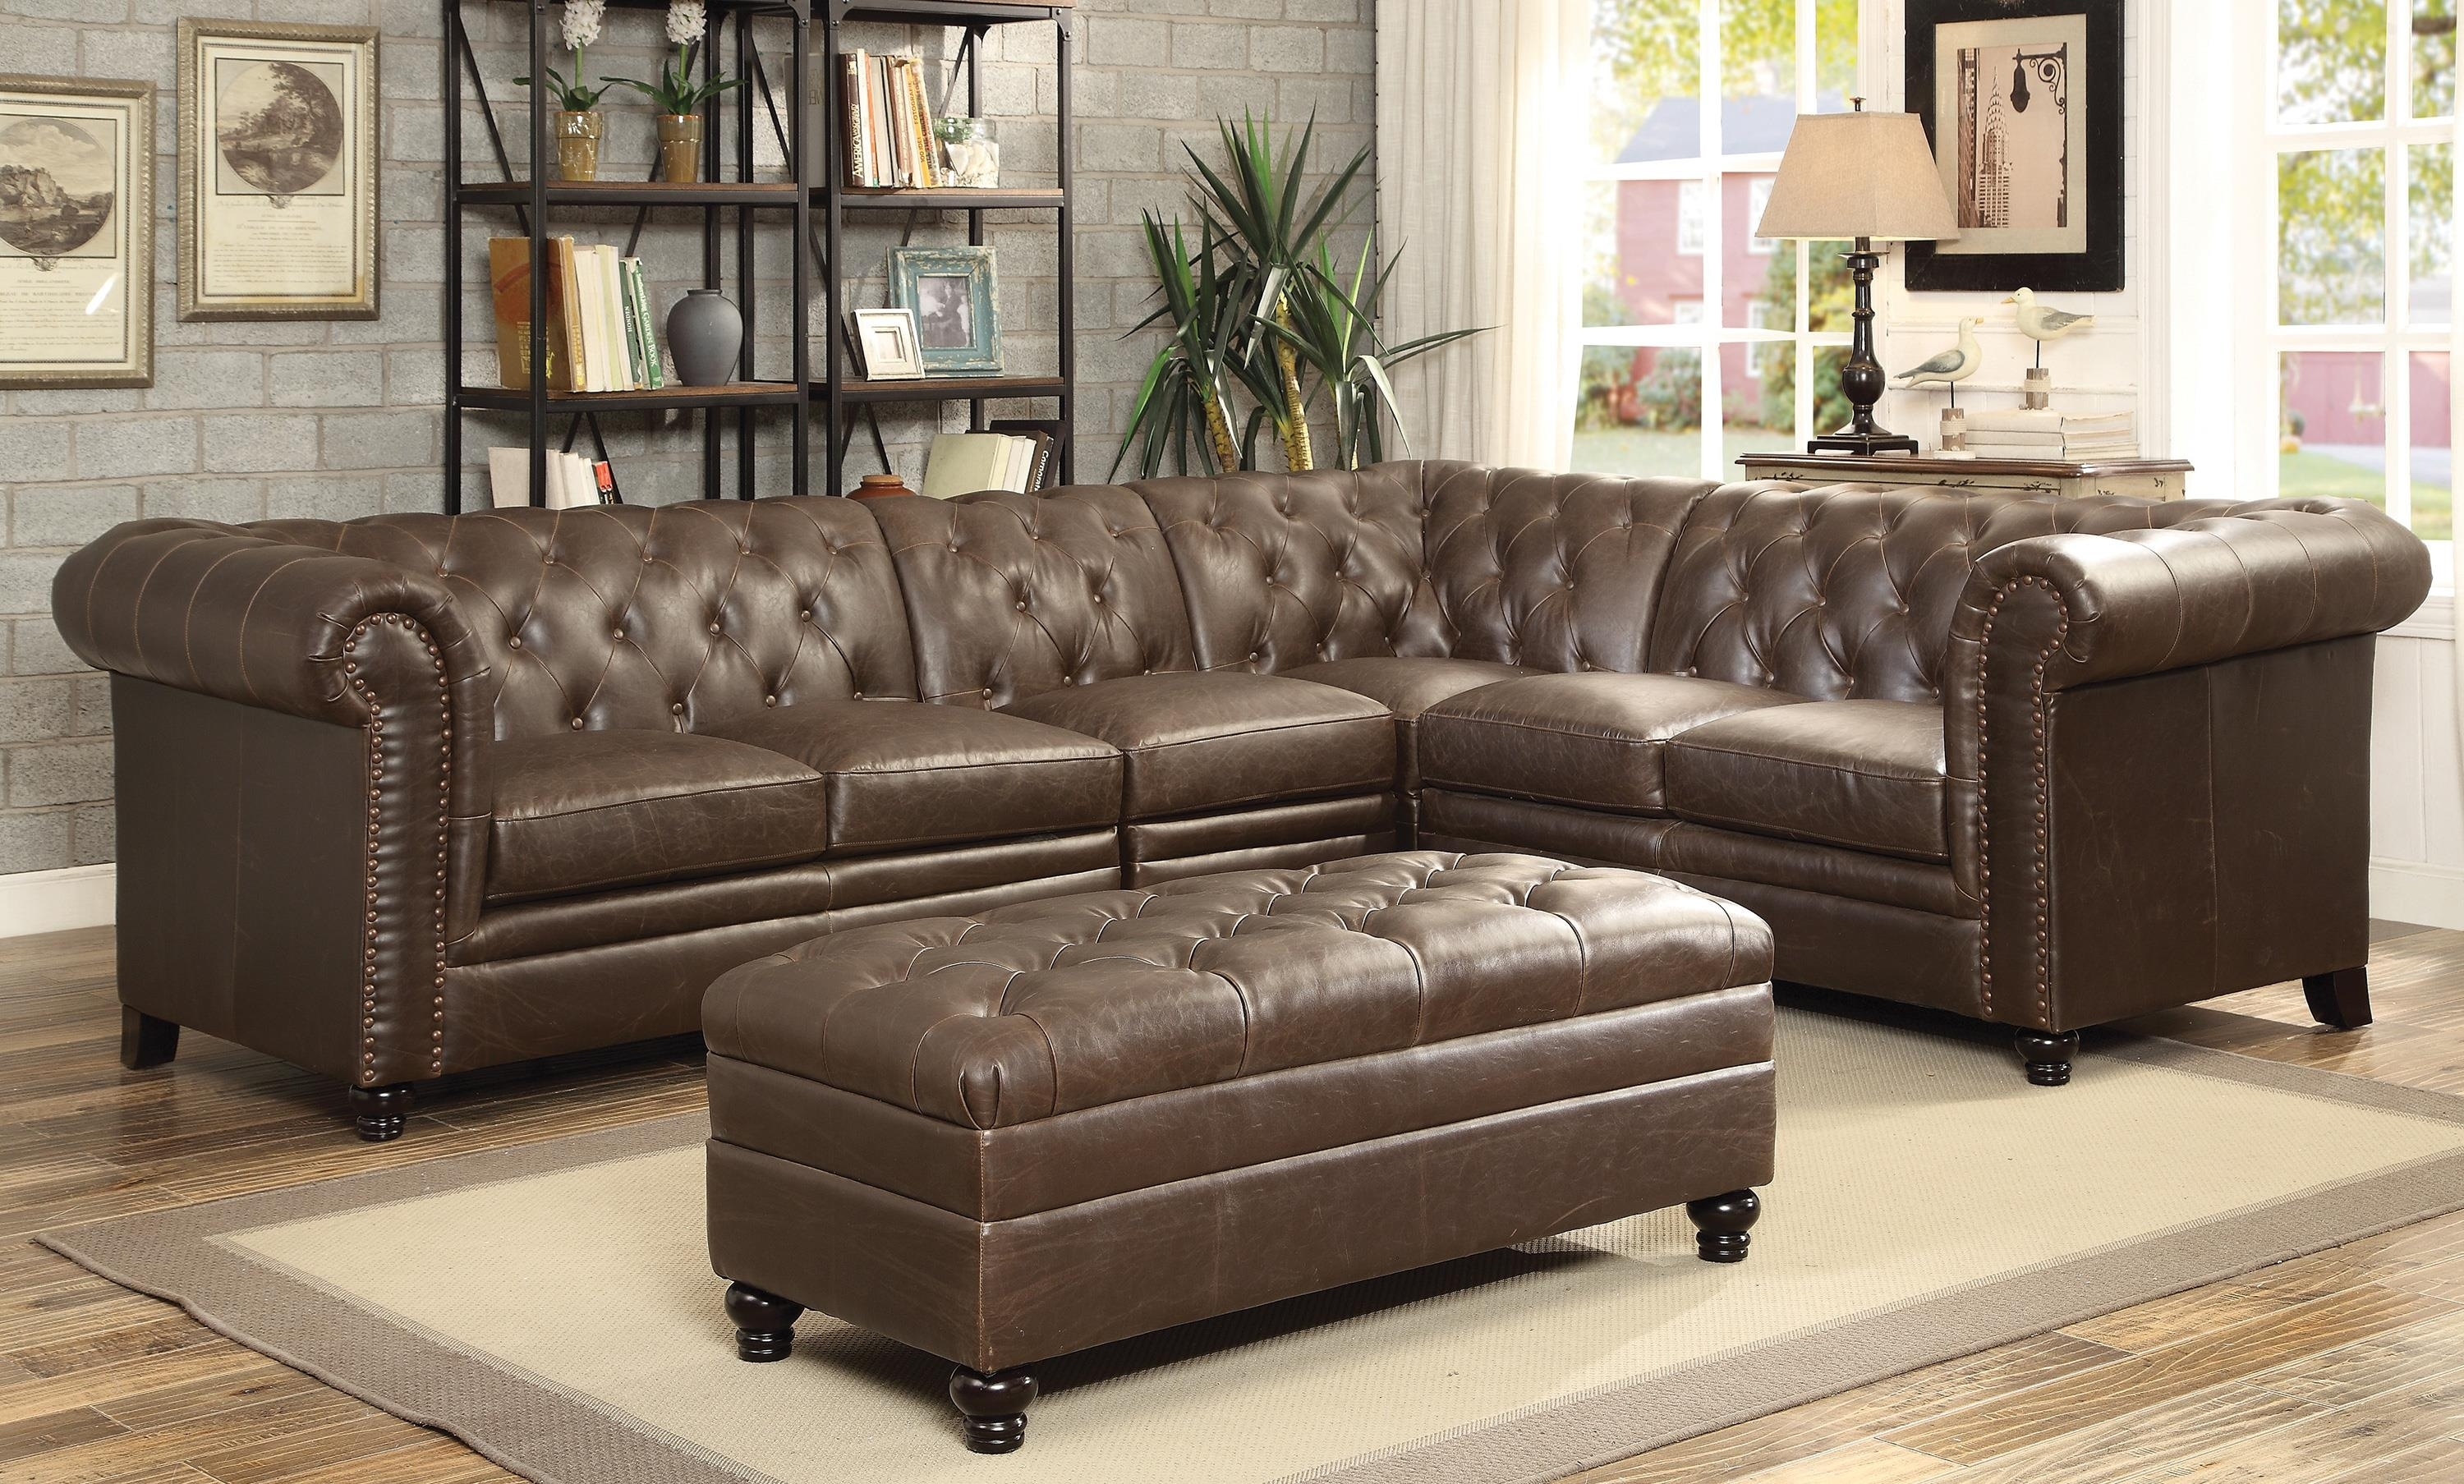 Tufted Sectional Sofa With Chaise – Visionexchange (Image 10 of 10)